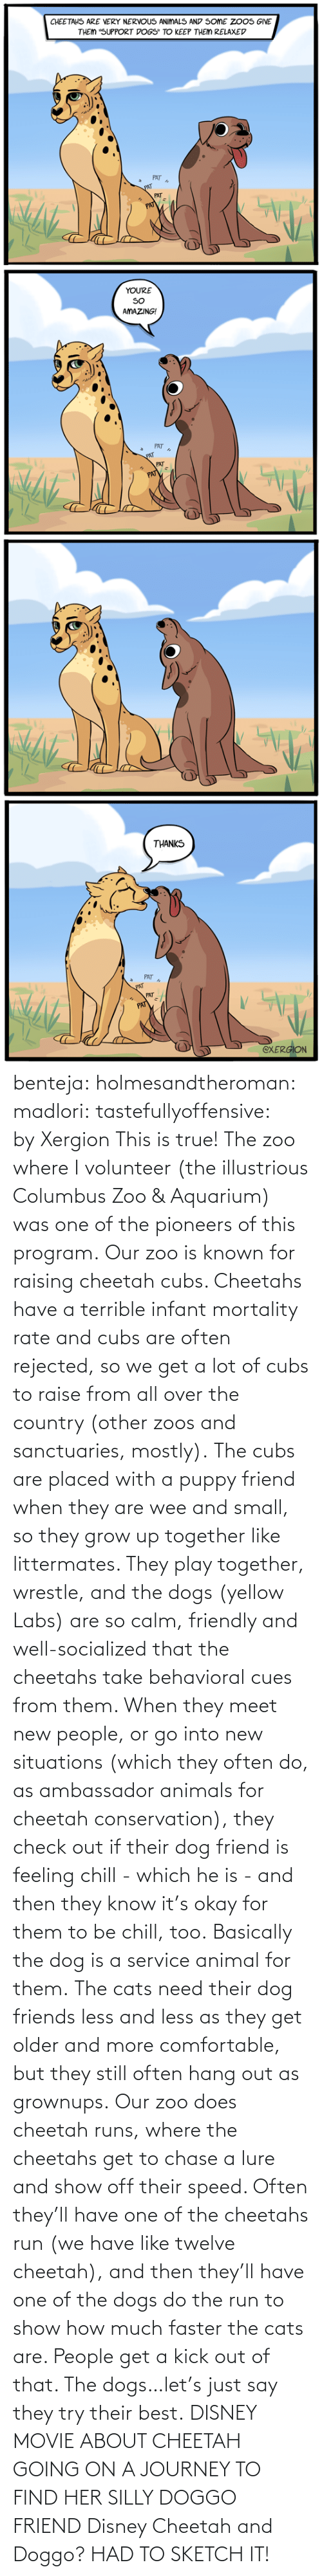 Friendly: benteja:  holmesandtheroman:  madlori:  tastefullyoffensive: by Xergion This is true! The zoo where I volunteer (the illustrious Columbus Zoo & Aquarium) was one of the pioneers of this program. Our zoo is known for raising cheetah cubs. Cheetahs have a terrible infant mortality rate and cubs are often rejected, so we get a lot of cubs to raise from all over the country (other zoos and sanctuaries, mostly). The cubs are placed with a puppy friend when they are wee and small, so they grow up together like littermates. They play together, wrestle, and the dogs (yellow Labs) are so calm, friendly and well-socialized that the cheetahs take behavioral cues from them. When they meet new people, or go into new situations (which they often do, as ambassador animals for cheetah conservation), they check out if their dog friend is feeling chill - which he is - and then they know it's okay for them to be chill, too. Basically the dog is a service animal for them. The cats need their dog friends less and less as they get older and more comfortable, but they still often hang out as grownups. Our zoo does cheetah runs, where the cheetahs get to chase a lure and show off their speed. Often they'll have one of the cheetahs run (we have like twelve cheetah), and then they'll have one of the dogs do the run to show how much faster the cats are. People get a kick out of that. The dogs…let's just say they try their best.   DISNEY MOVIE ABOUT CHEETAH GOING ON A JOURNEY TO FIND HER SILLY DOGGO FRIEND  Disney Cheetah and Doggo? HAD TO SKETCH IT!